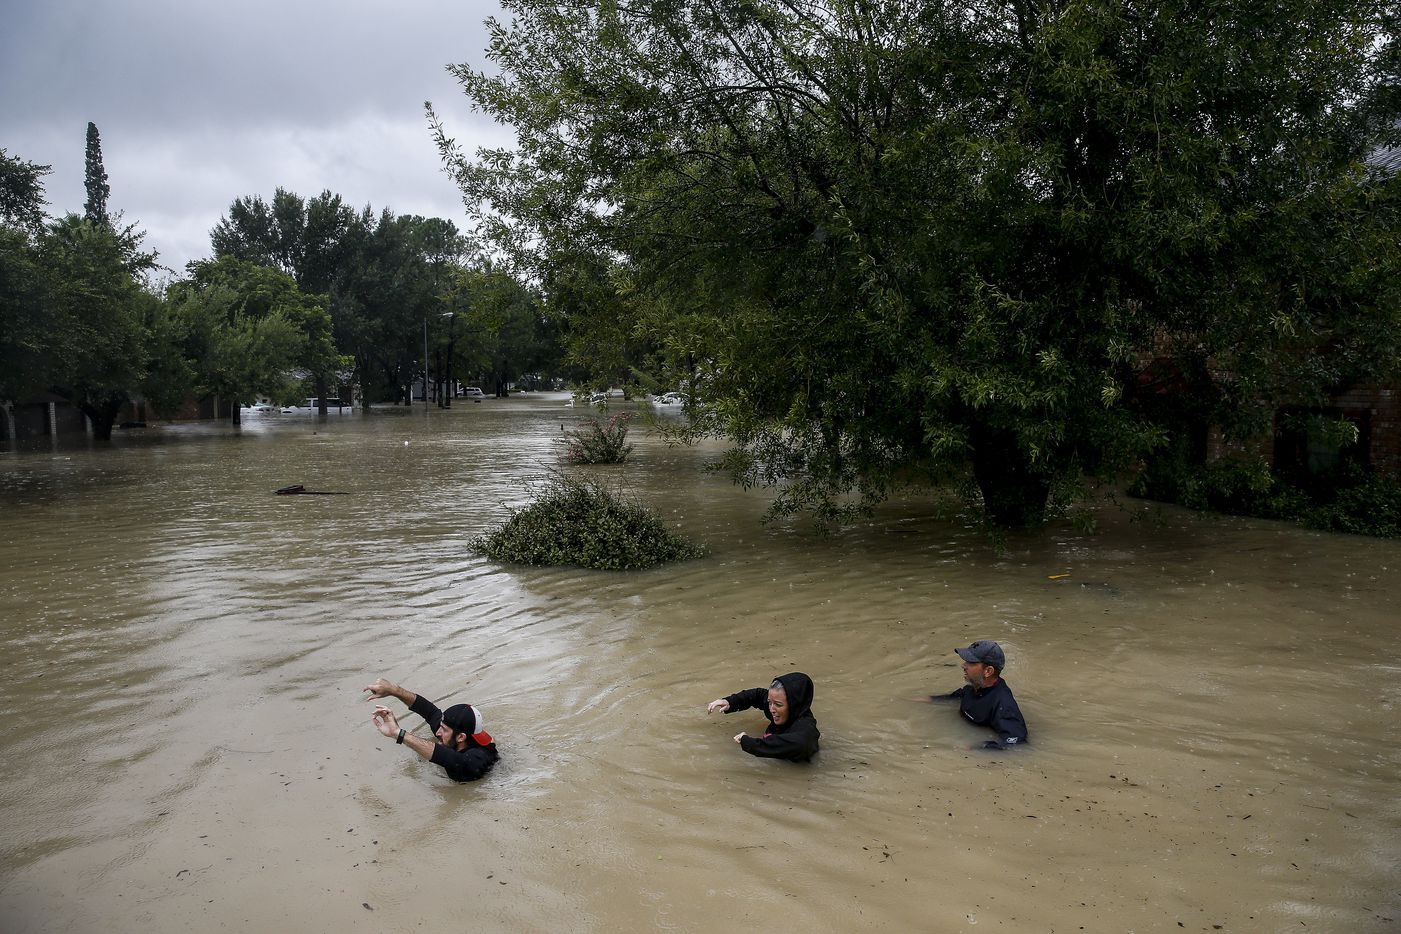 People wade through chest deep water down Pine Cliff Drive as Addicks Reservoir nears capacity due to near constant rain from Tropical Storm Harvey, Tuesday, Aug. 29, 2017 in Houston.